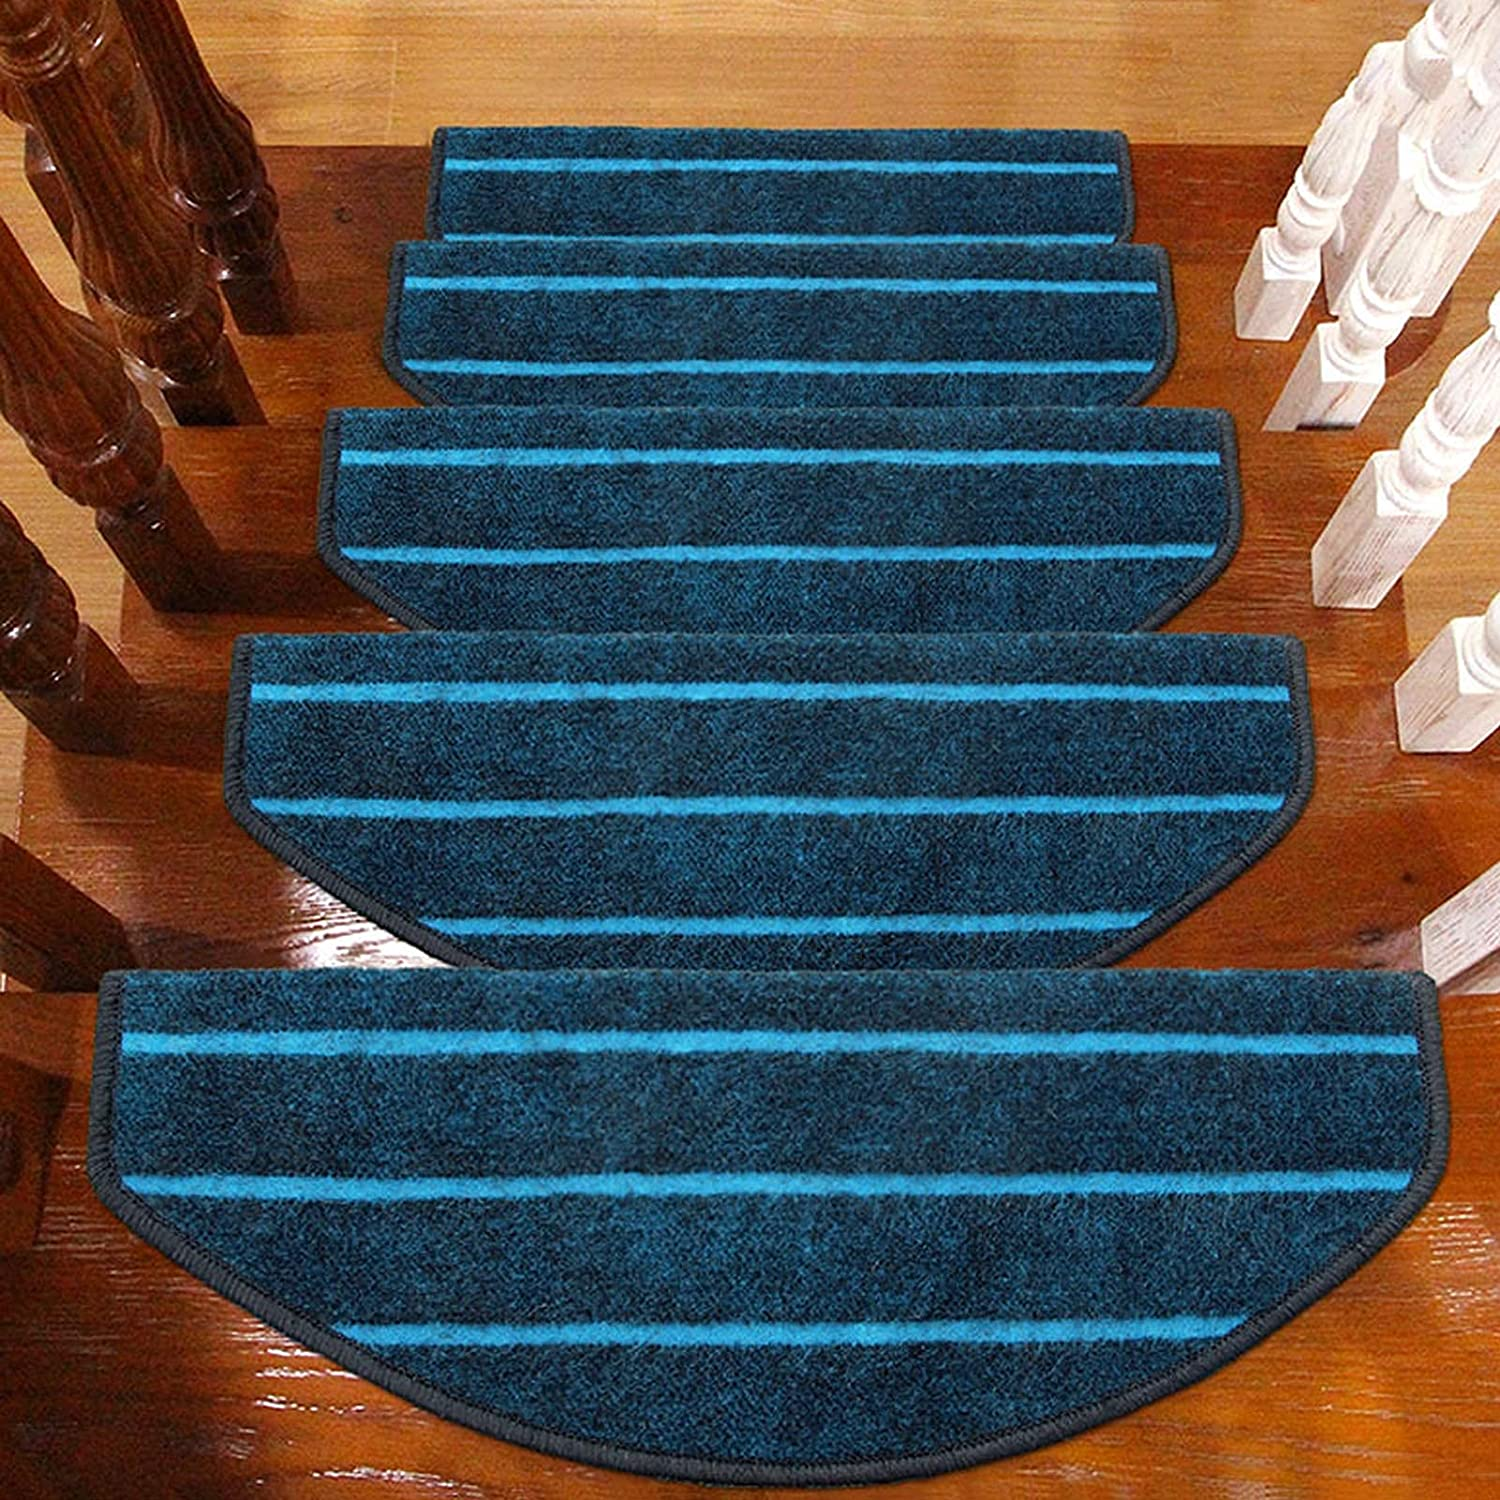 Topshop 15 Pack Stair Popular brand in the world Tread Carpet Slip Mats Staircase Non Step A surprise price is realized